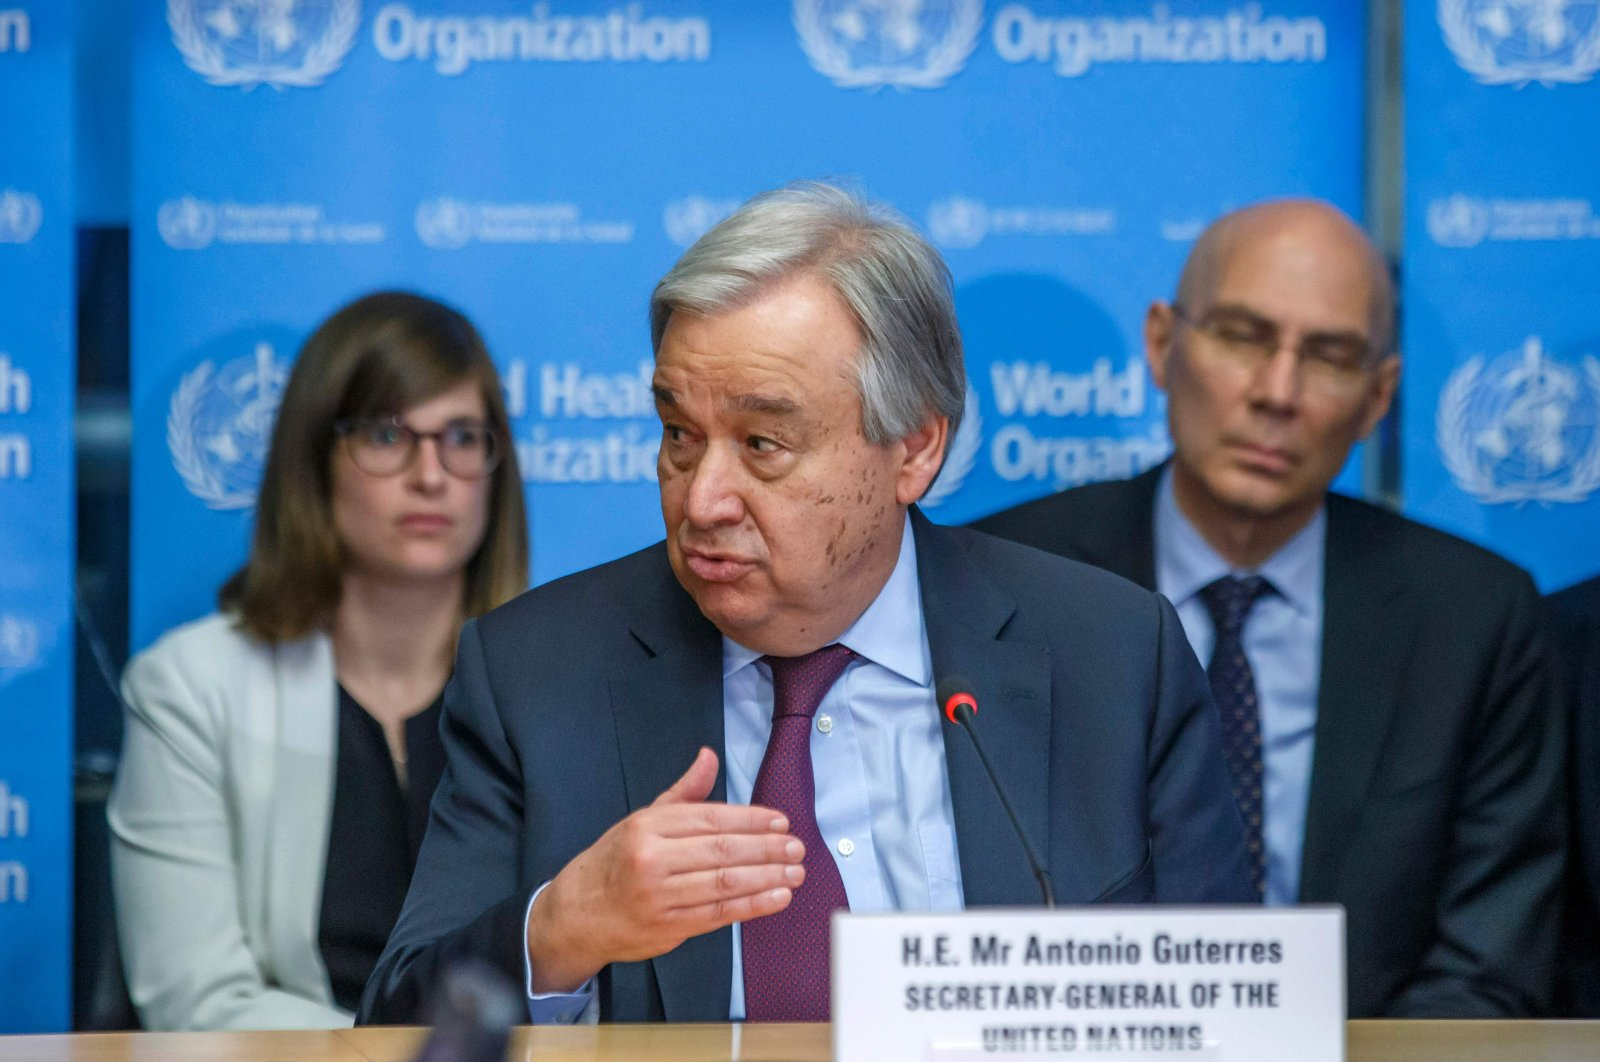 UN Secretary-General Antonio Guterres speaks during an update on the situation regarding the COVID-19 in the SHOC room (Strategic health operations centre) at the World Health Organization (WHO) headquarters in Geneva, Feb. 24, 2020. (AFP)